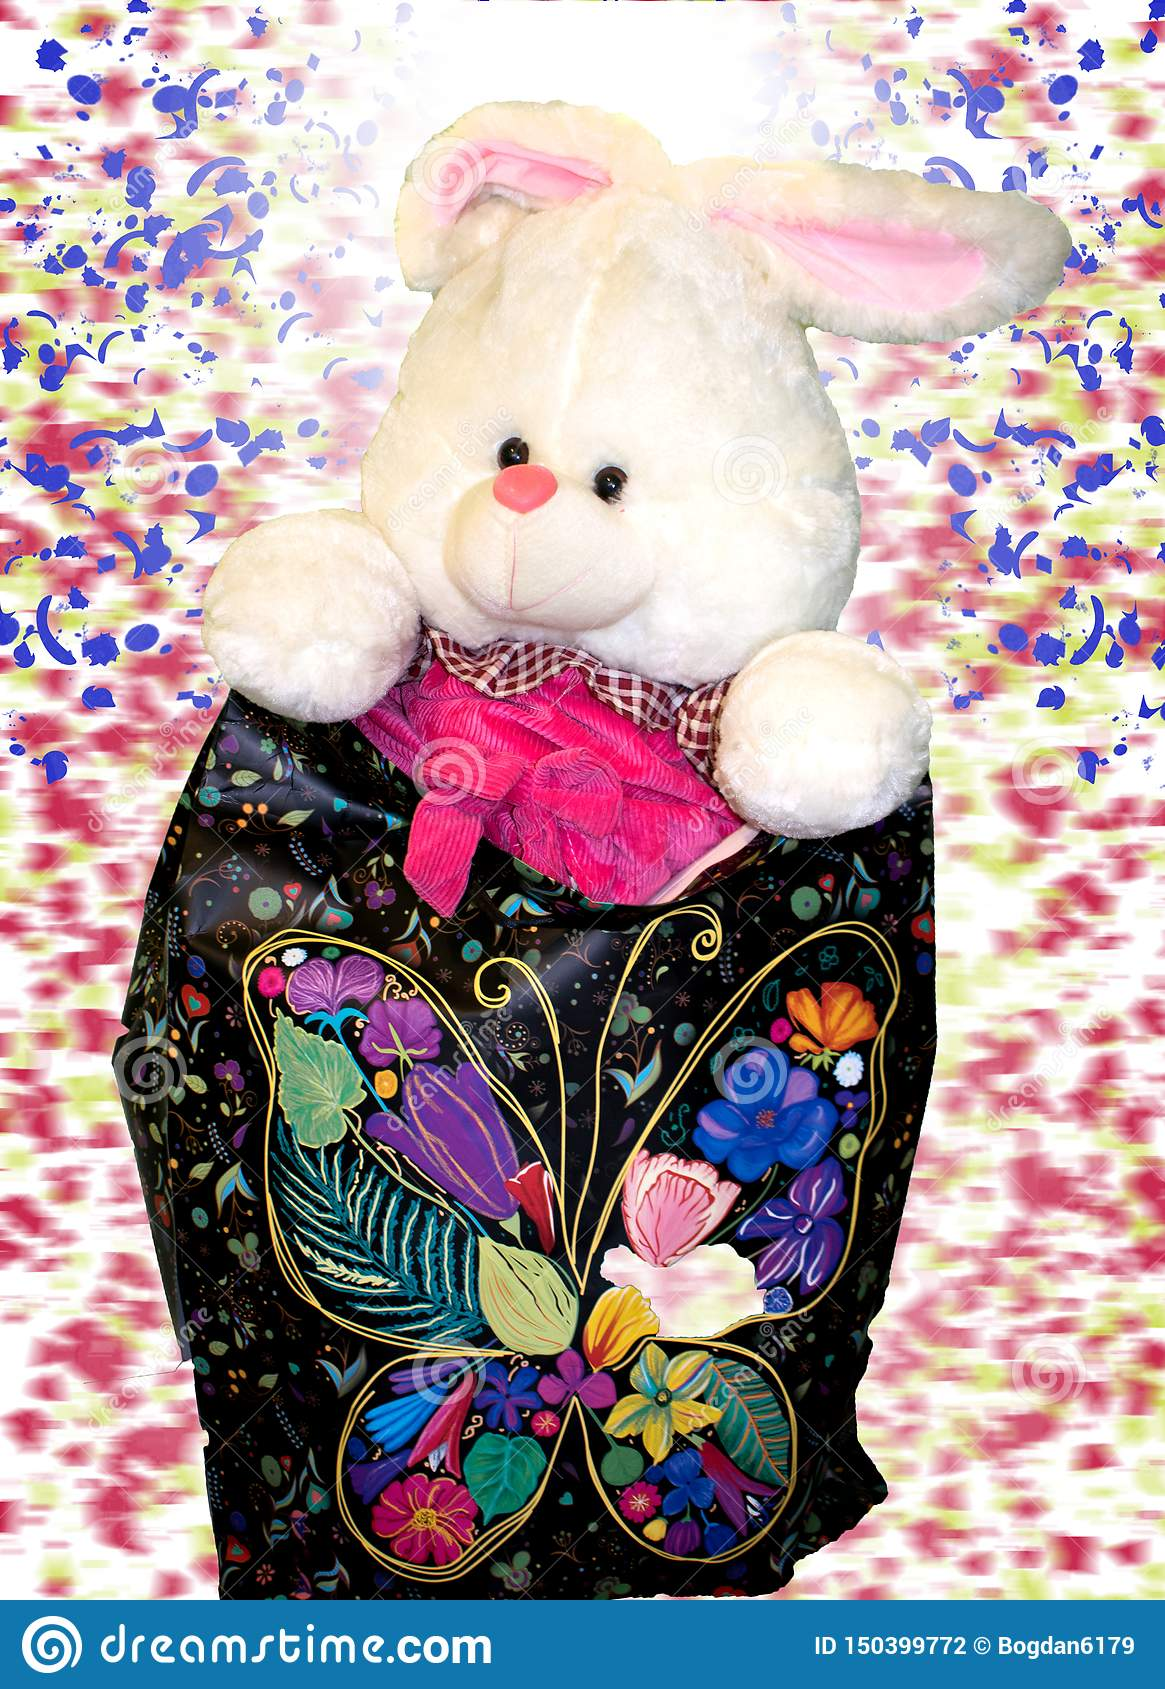 Toys for kids.the little rabbit is ready to be offered a gift